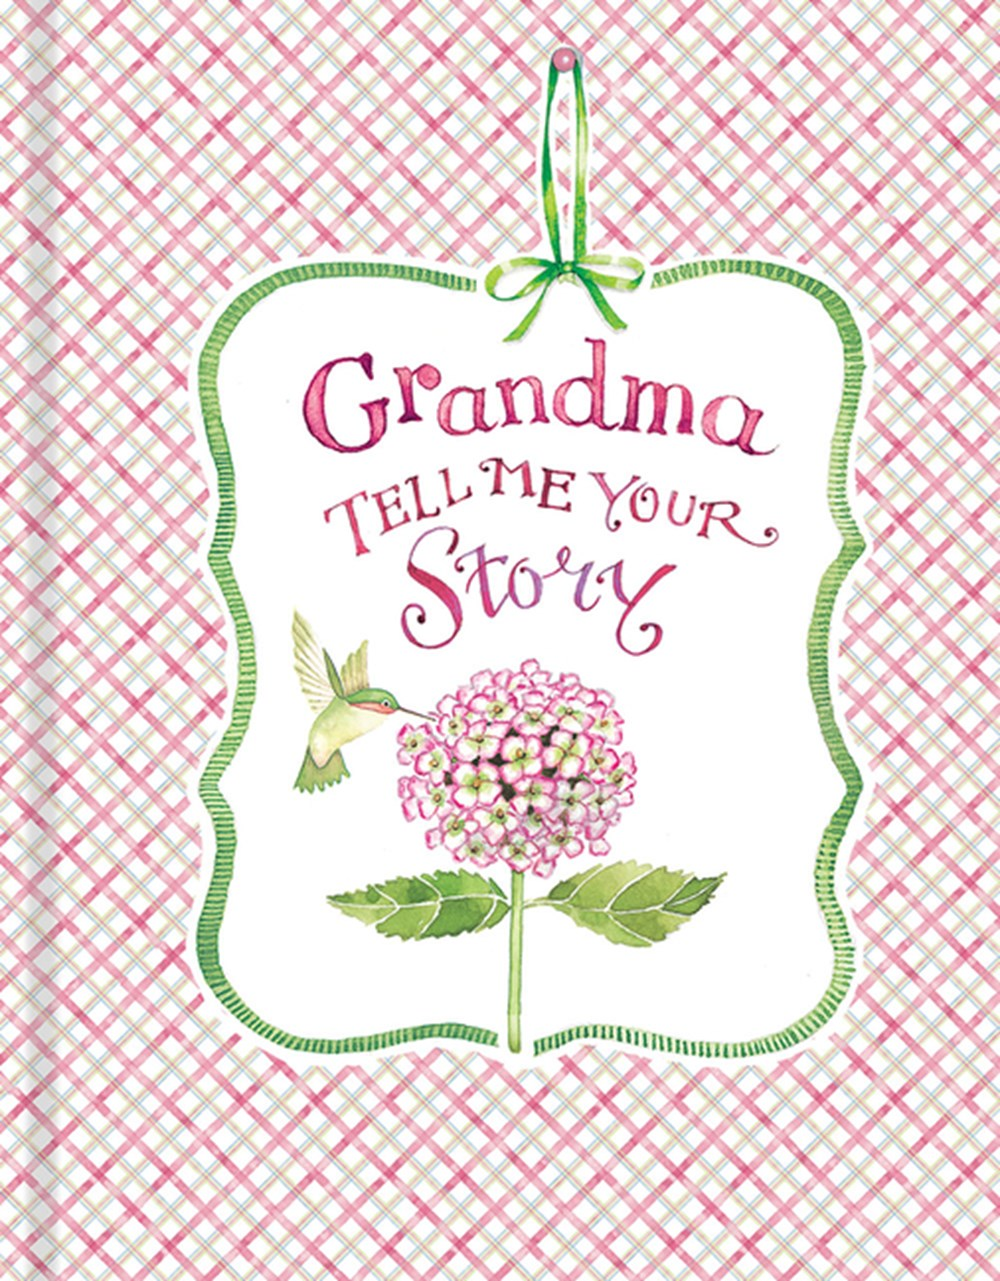 Grandma Tell Me Your Story